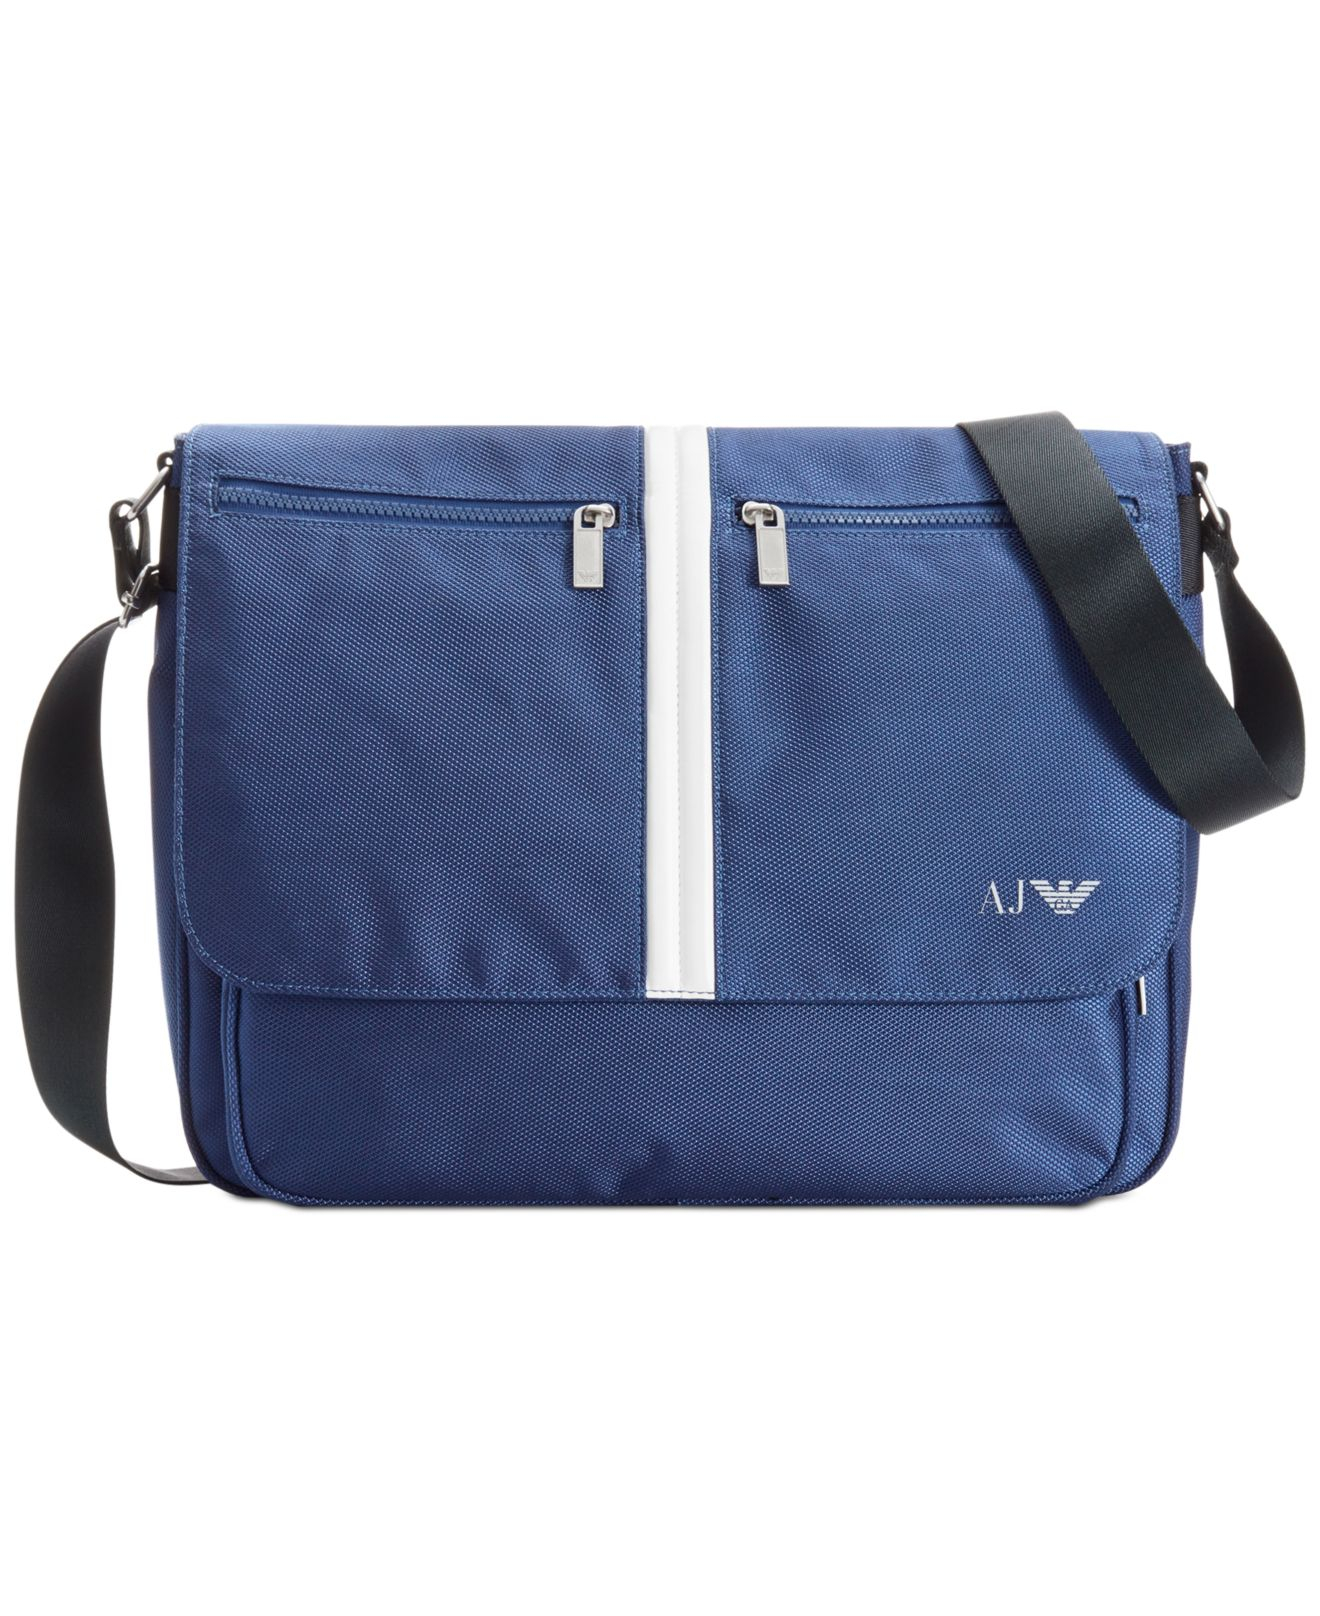 Armani jeans Messenger Bag in Blue for Men